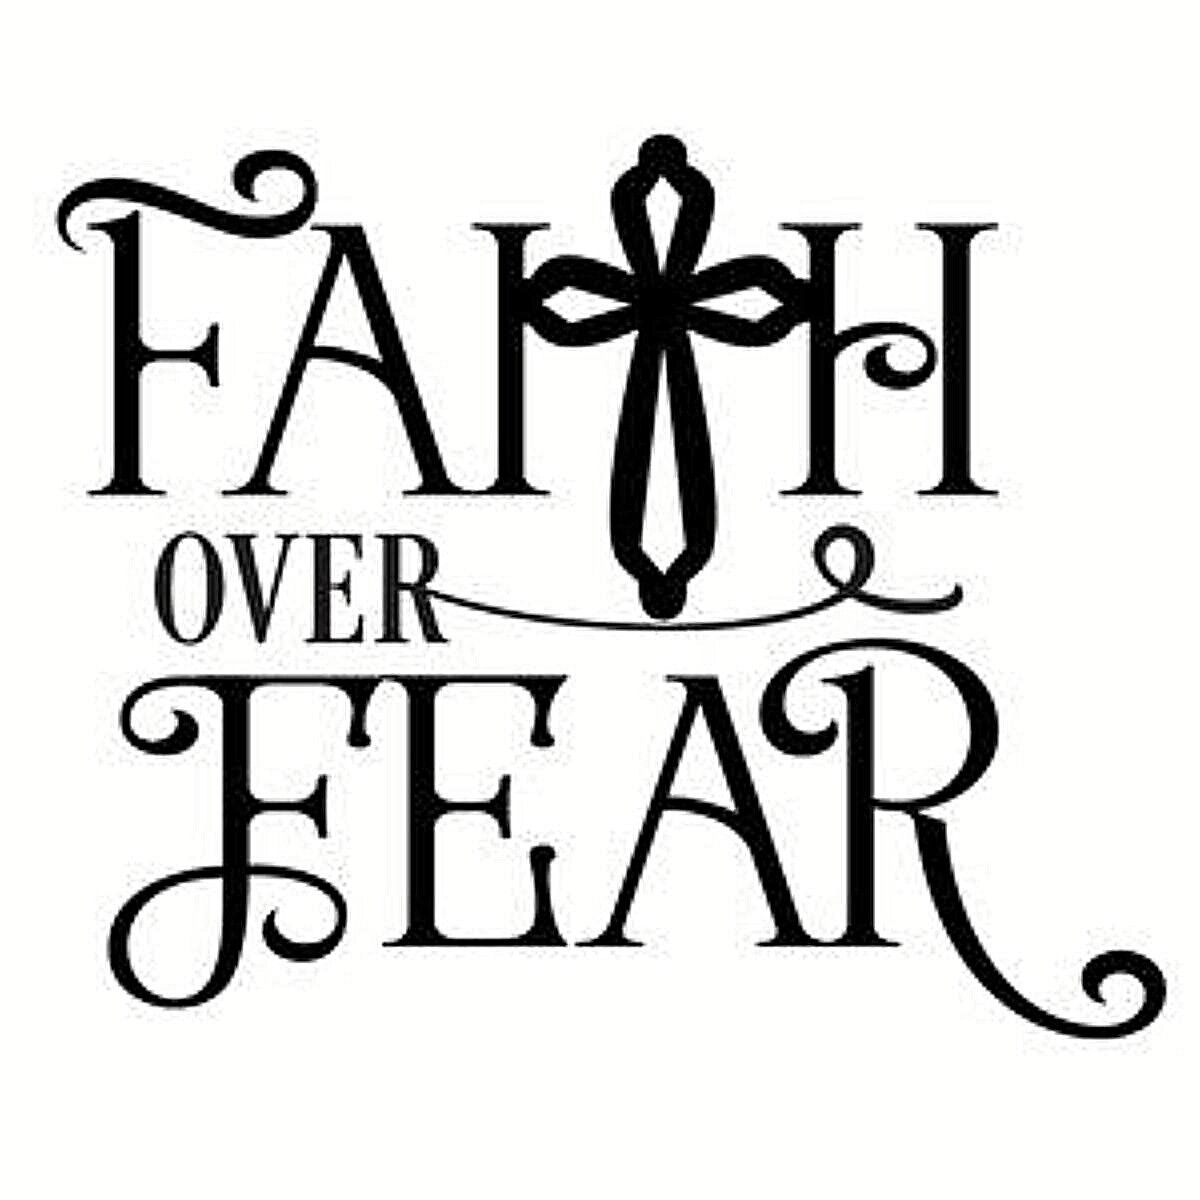 Faith Over Fear Quote Wall Decal Sticker Bedroom Home Room Art Vinyl Inspirational Motivational Teen Decor Decoration Religious God Blessed